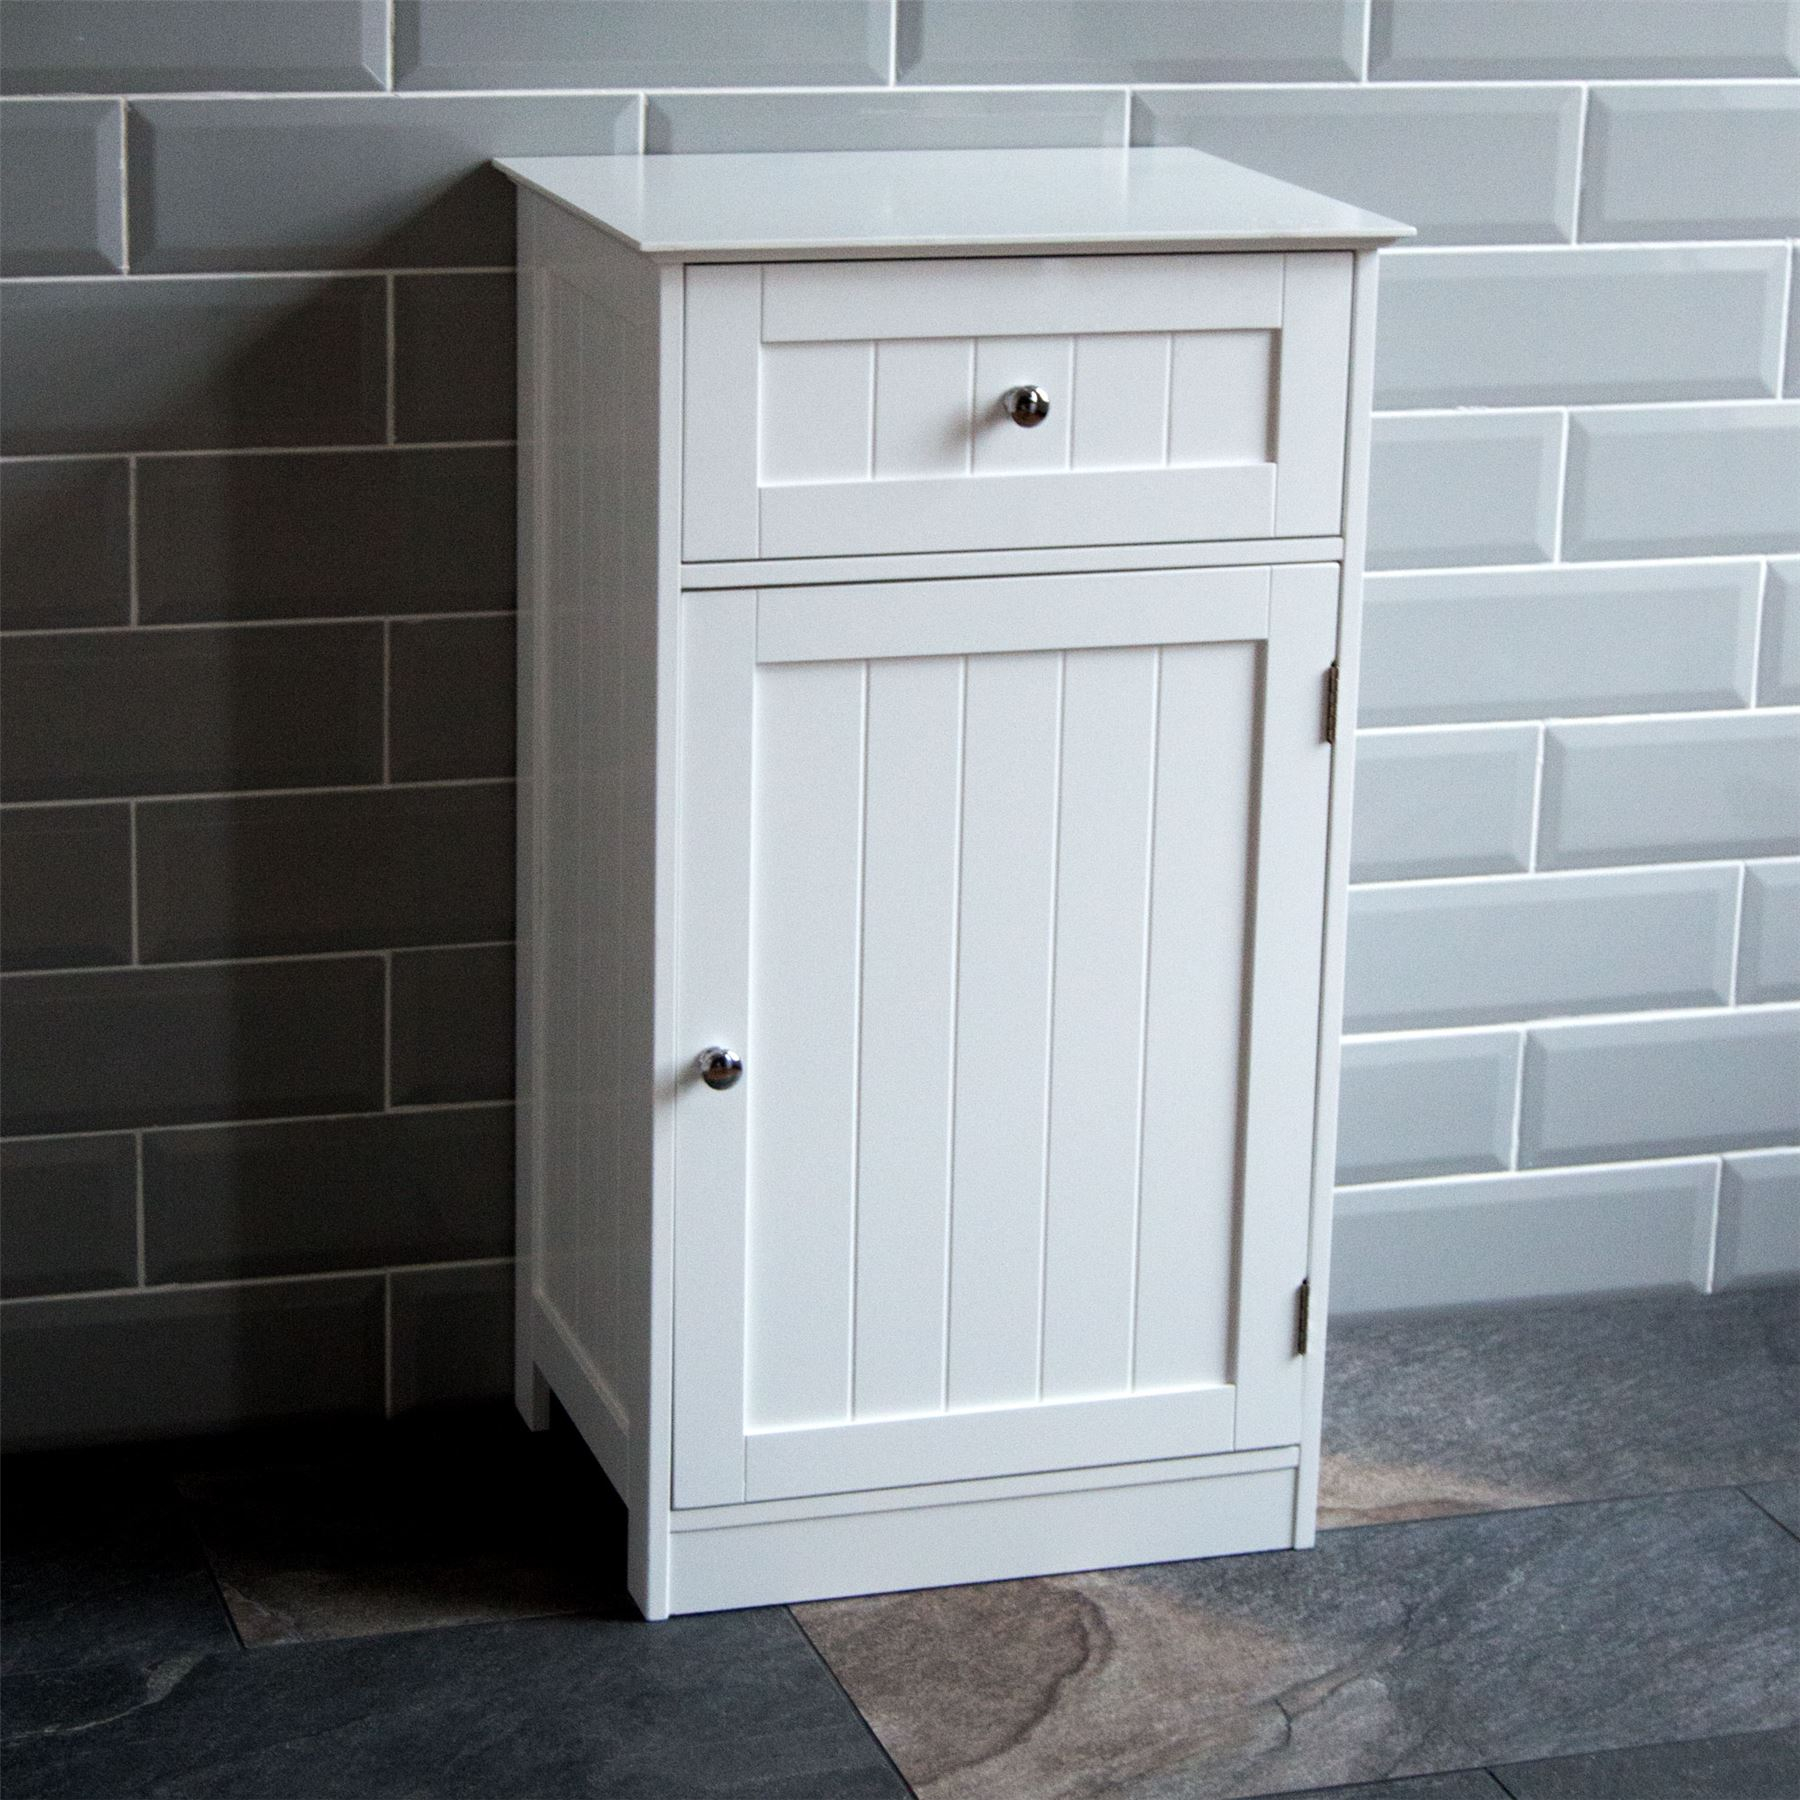 Details About Bathroom Cabinet 1 Door 1 Drawer Freestanding Storage Unit Wood Home Discount within sizing 1800 X 1800